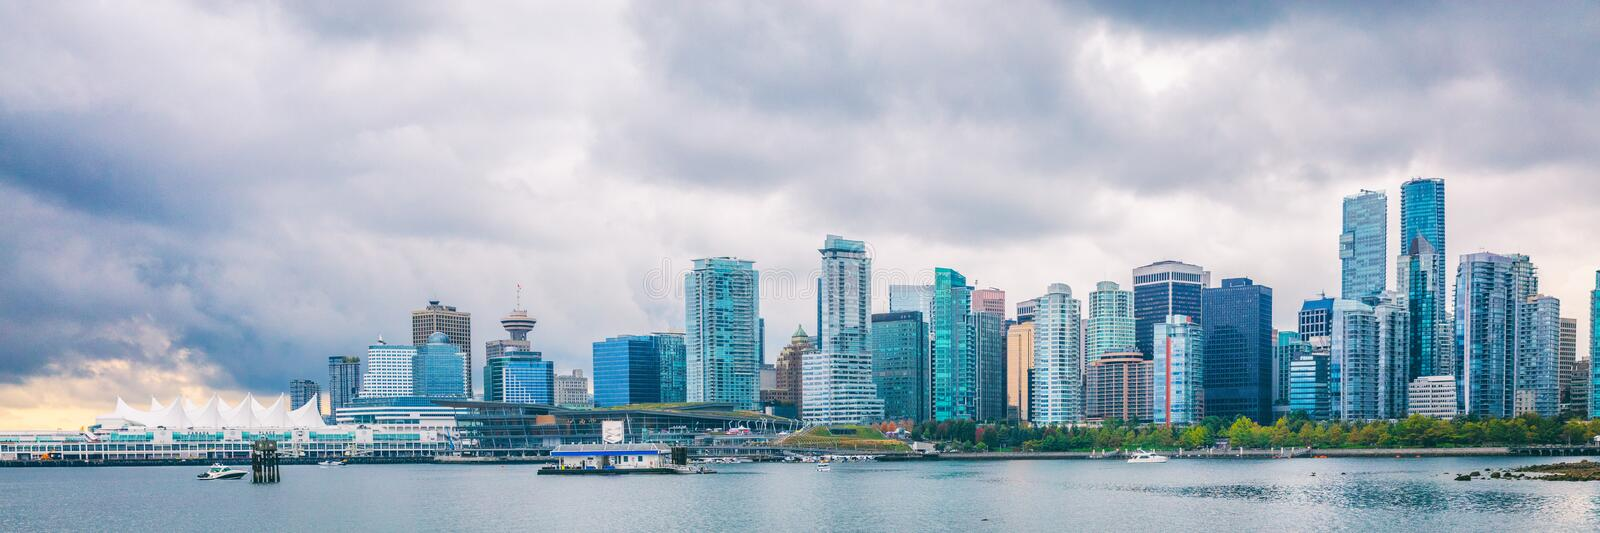 Vancouver city skyline panoramic banner landscape in Autumn - British Columbia, Canada. Urban background stock photography